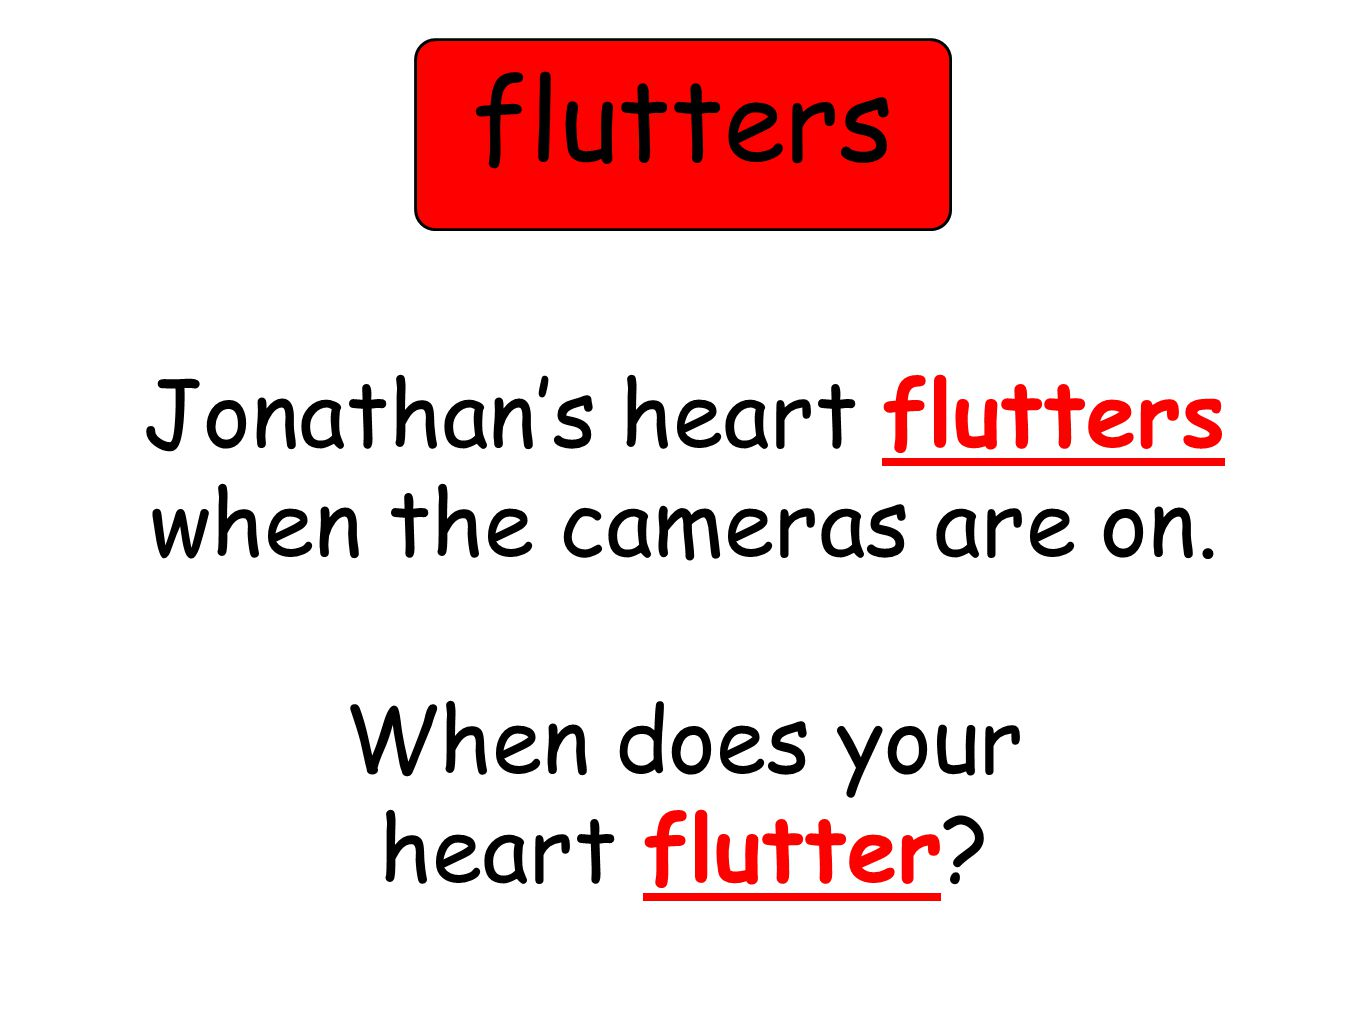 Jonathans heart flutters when the cameras are on. When does your heart flutter flutters